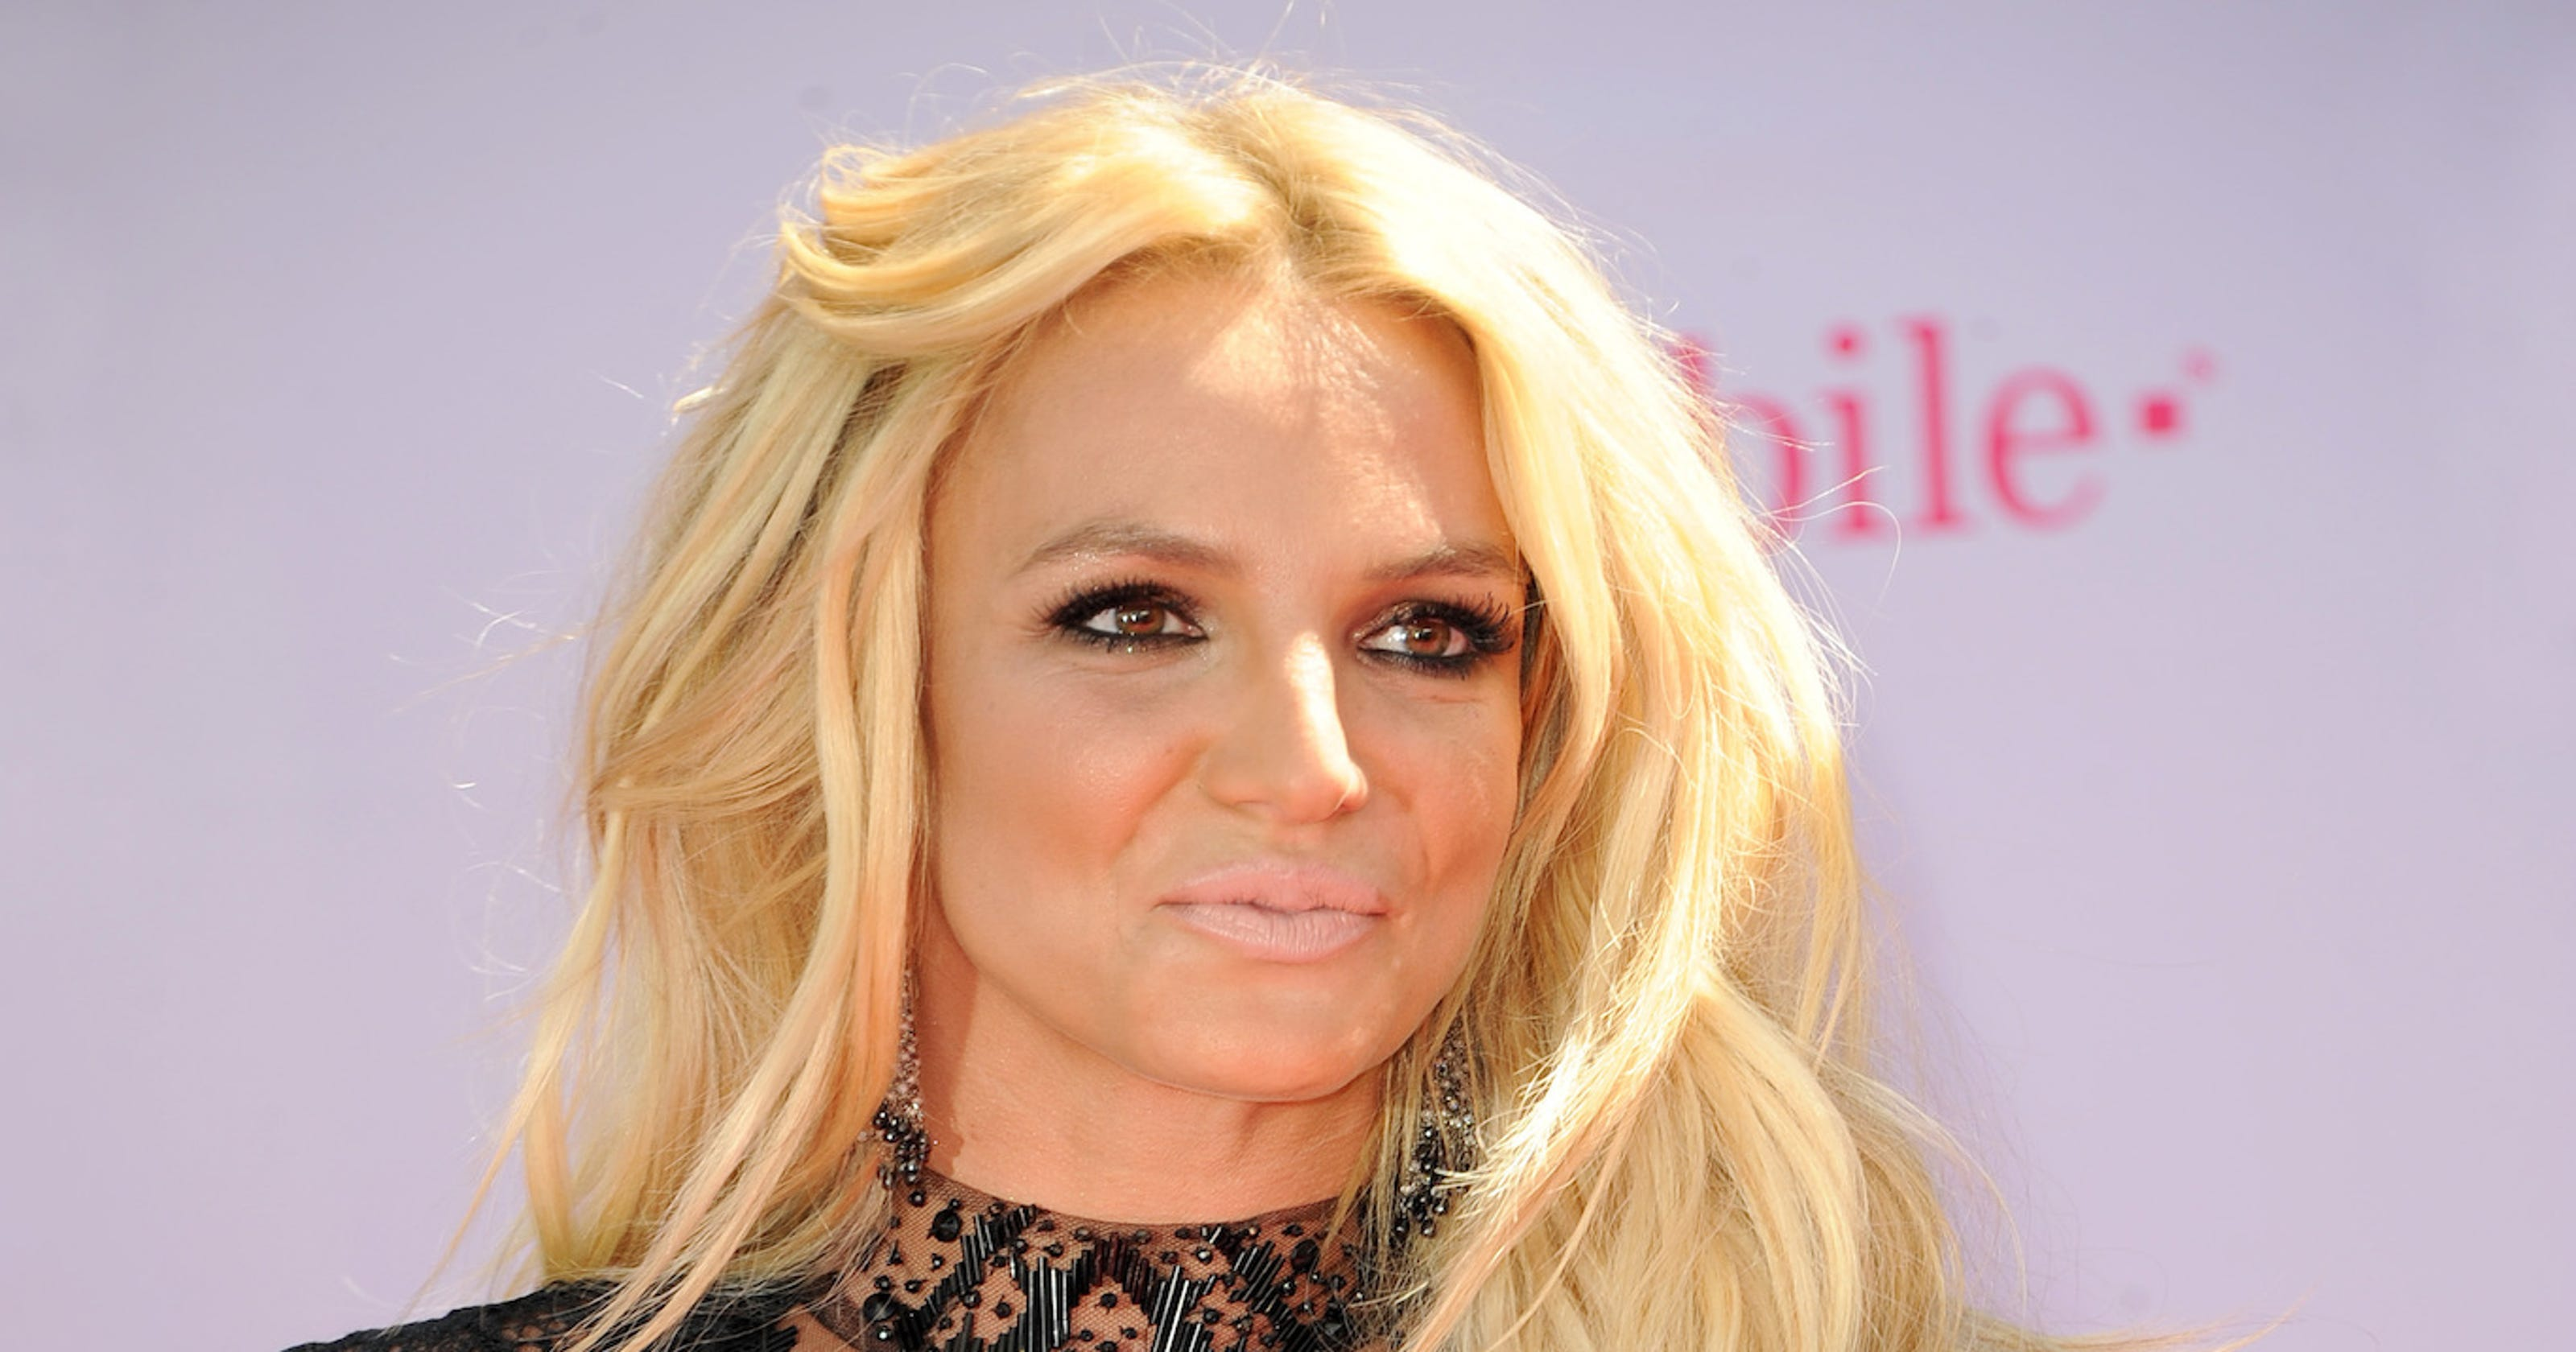 bc3a1b7d351e0 Britney Spears flaunts body in bikini, hits back at Instagram haters